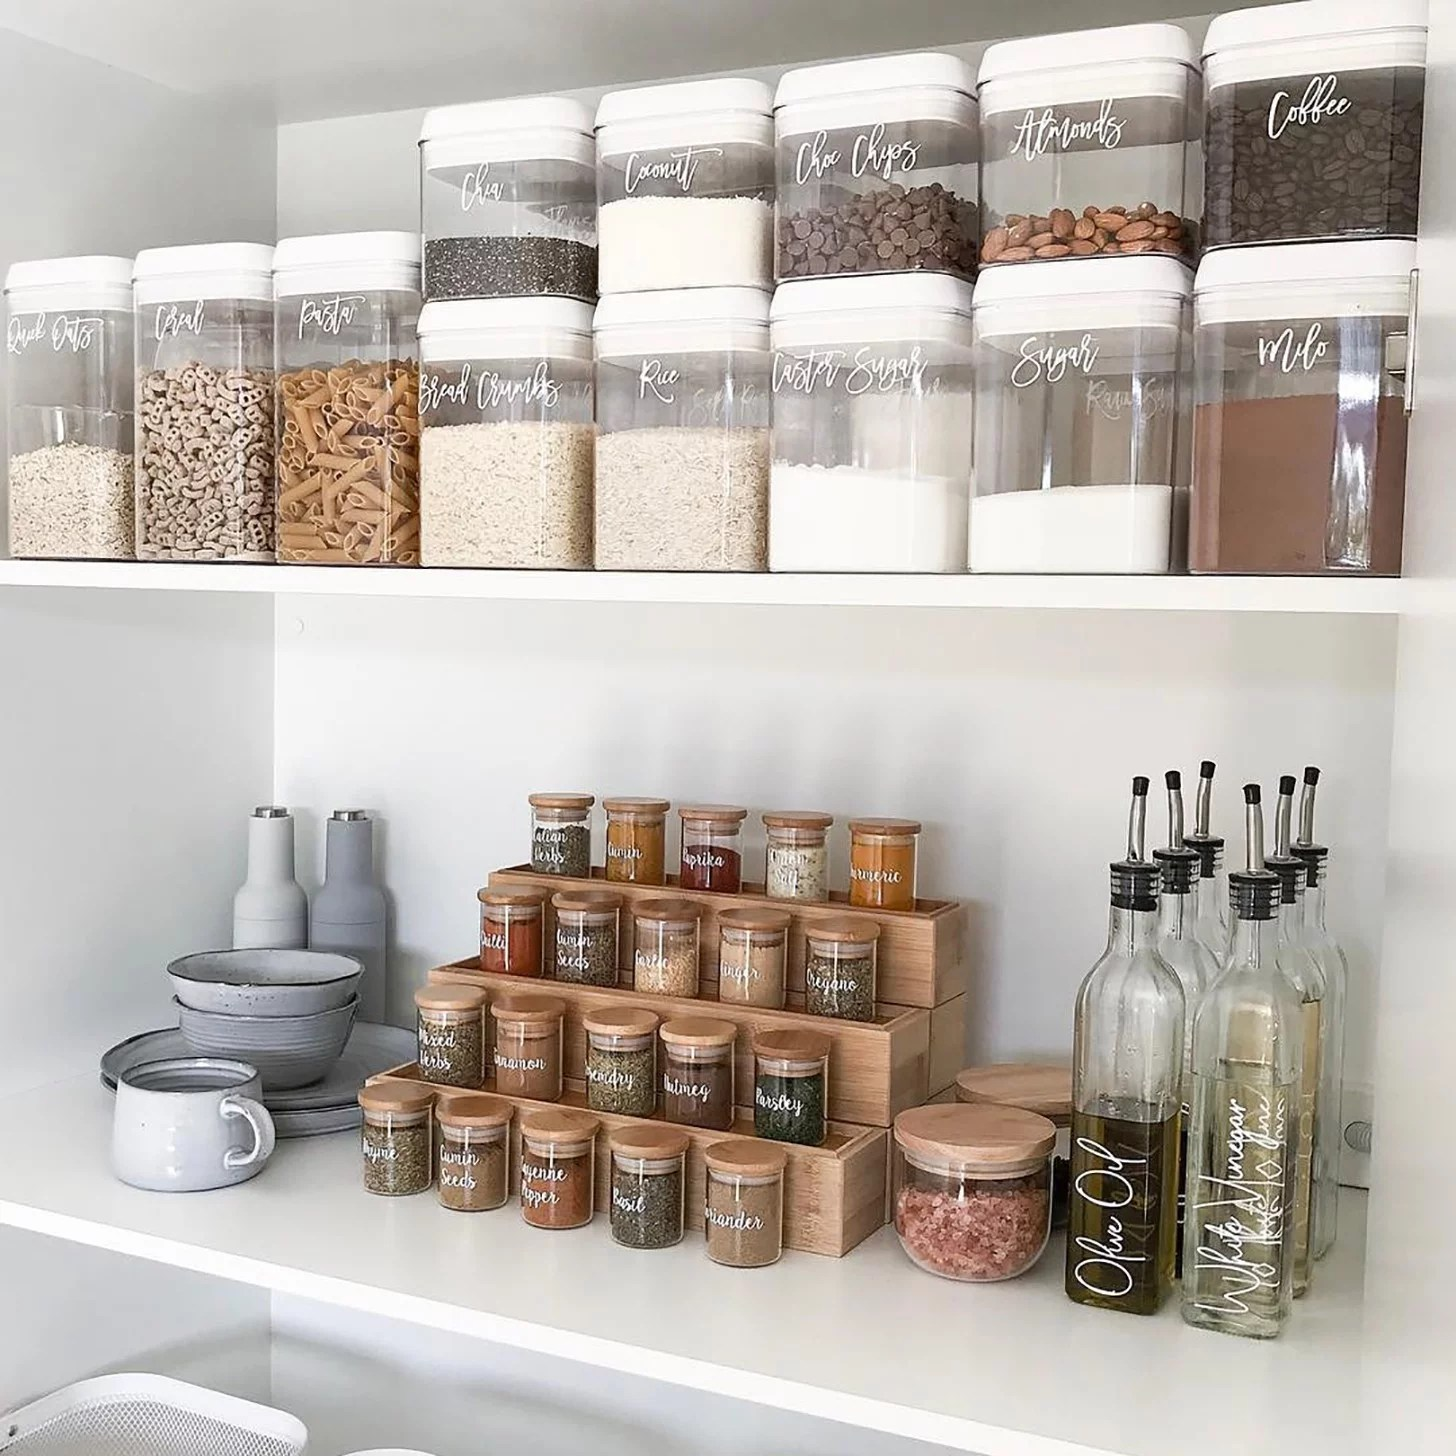 Kitchen Organizer Storage Marie Kondo Konmari Kitchen Organization Ideas Popsugar Food